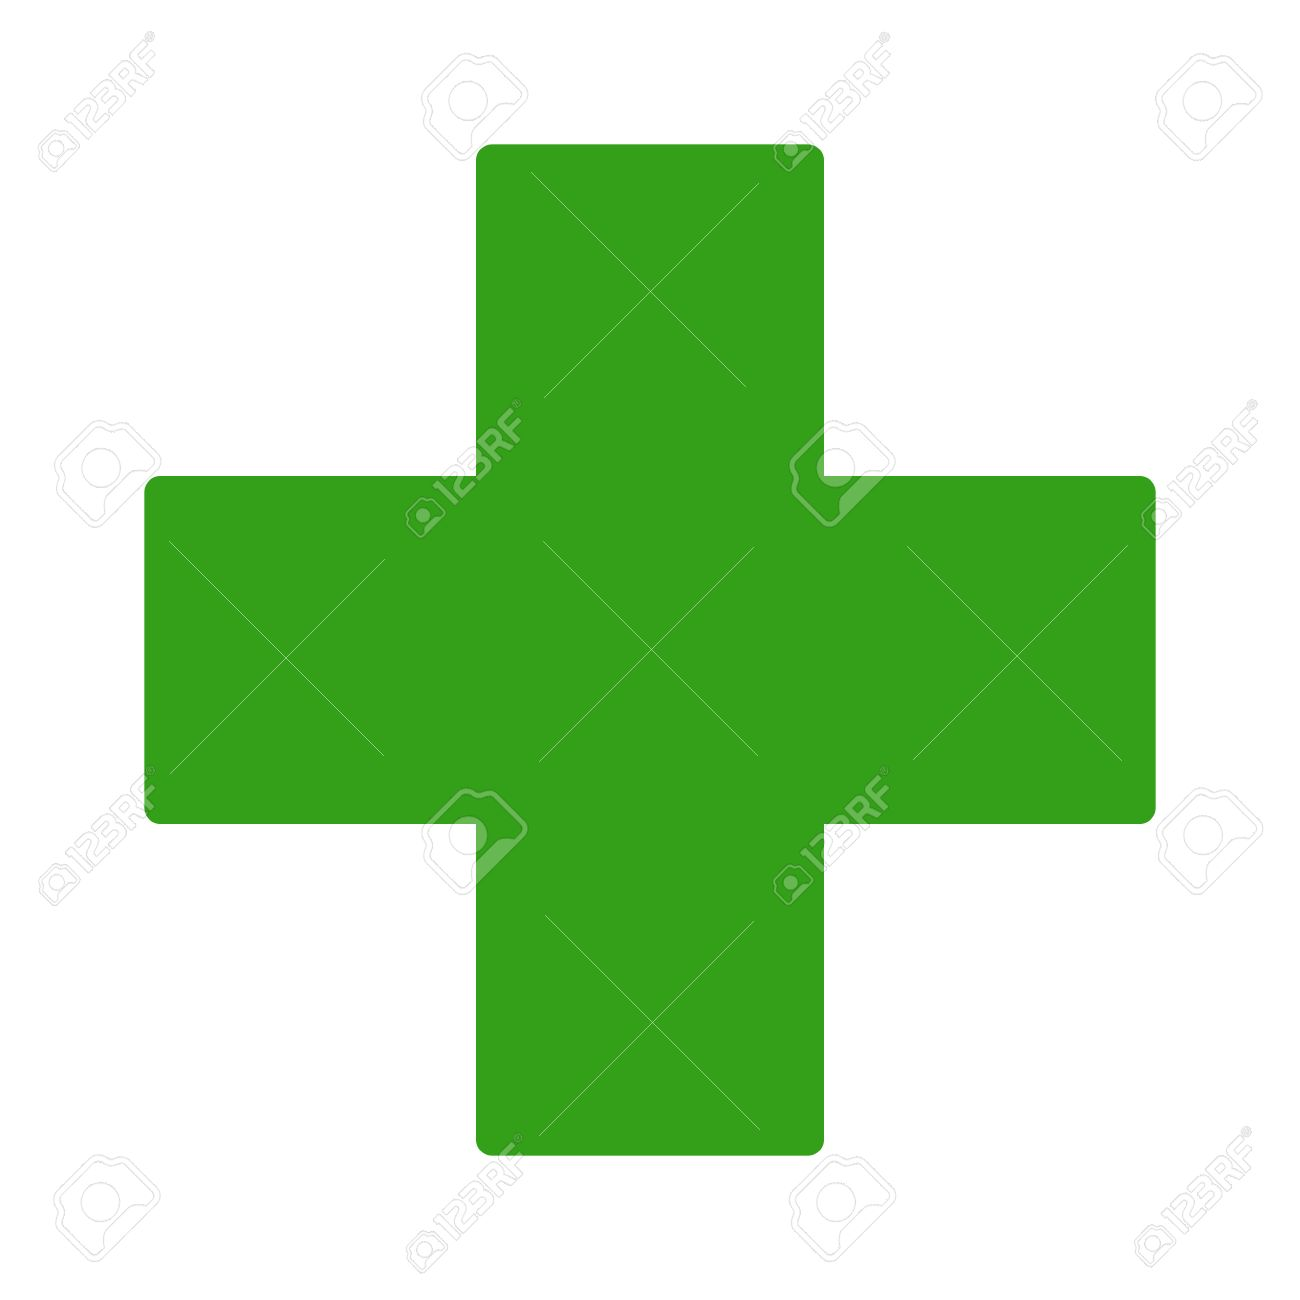 European green cross pharmacy store sign flat icon for apps and websites - 62747857